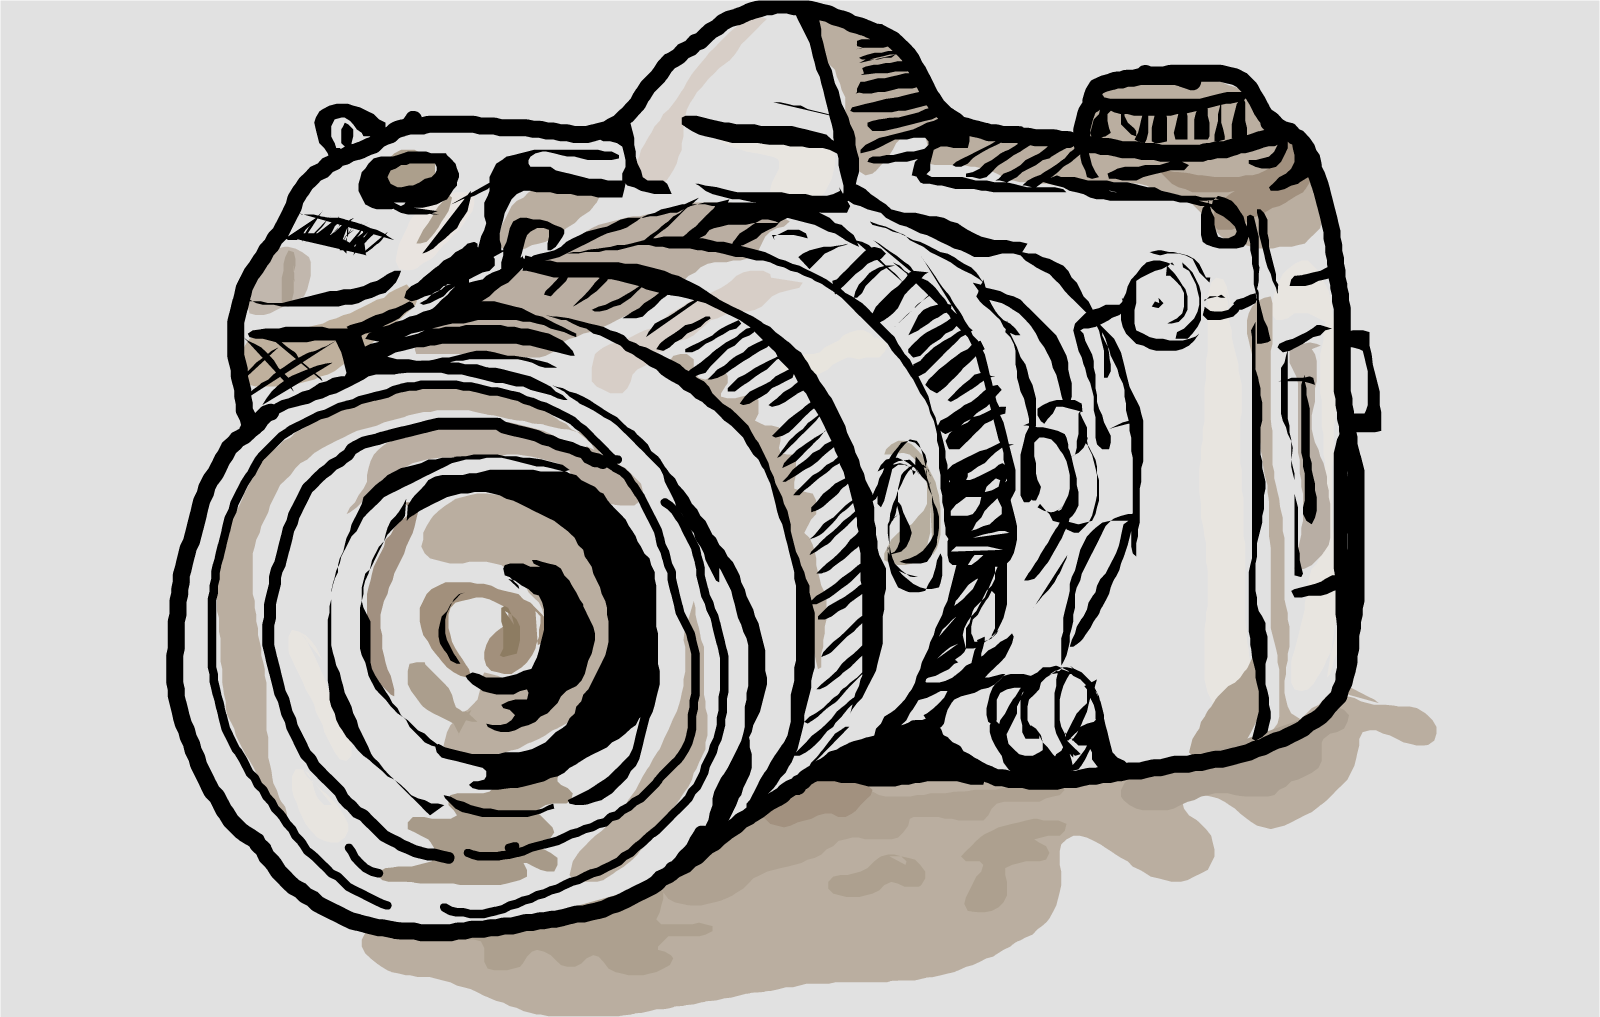 Camera Drawings SketchPort